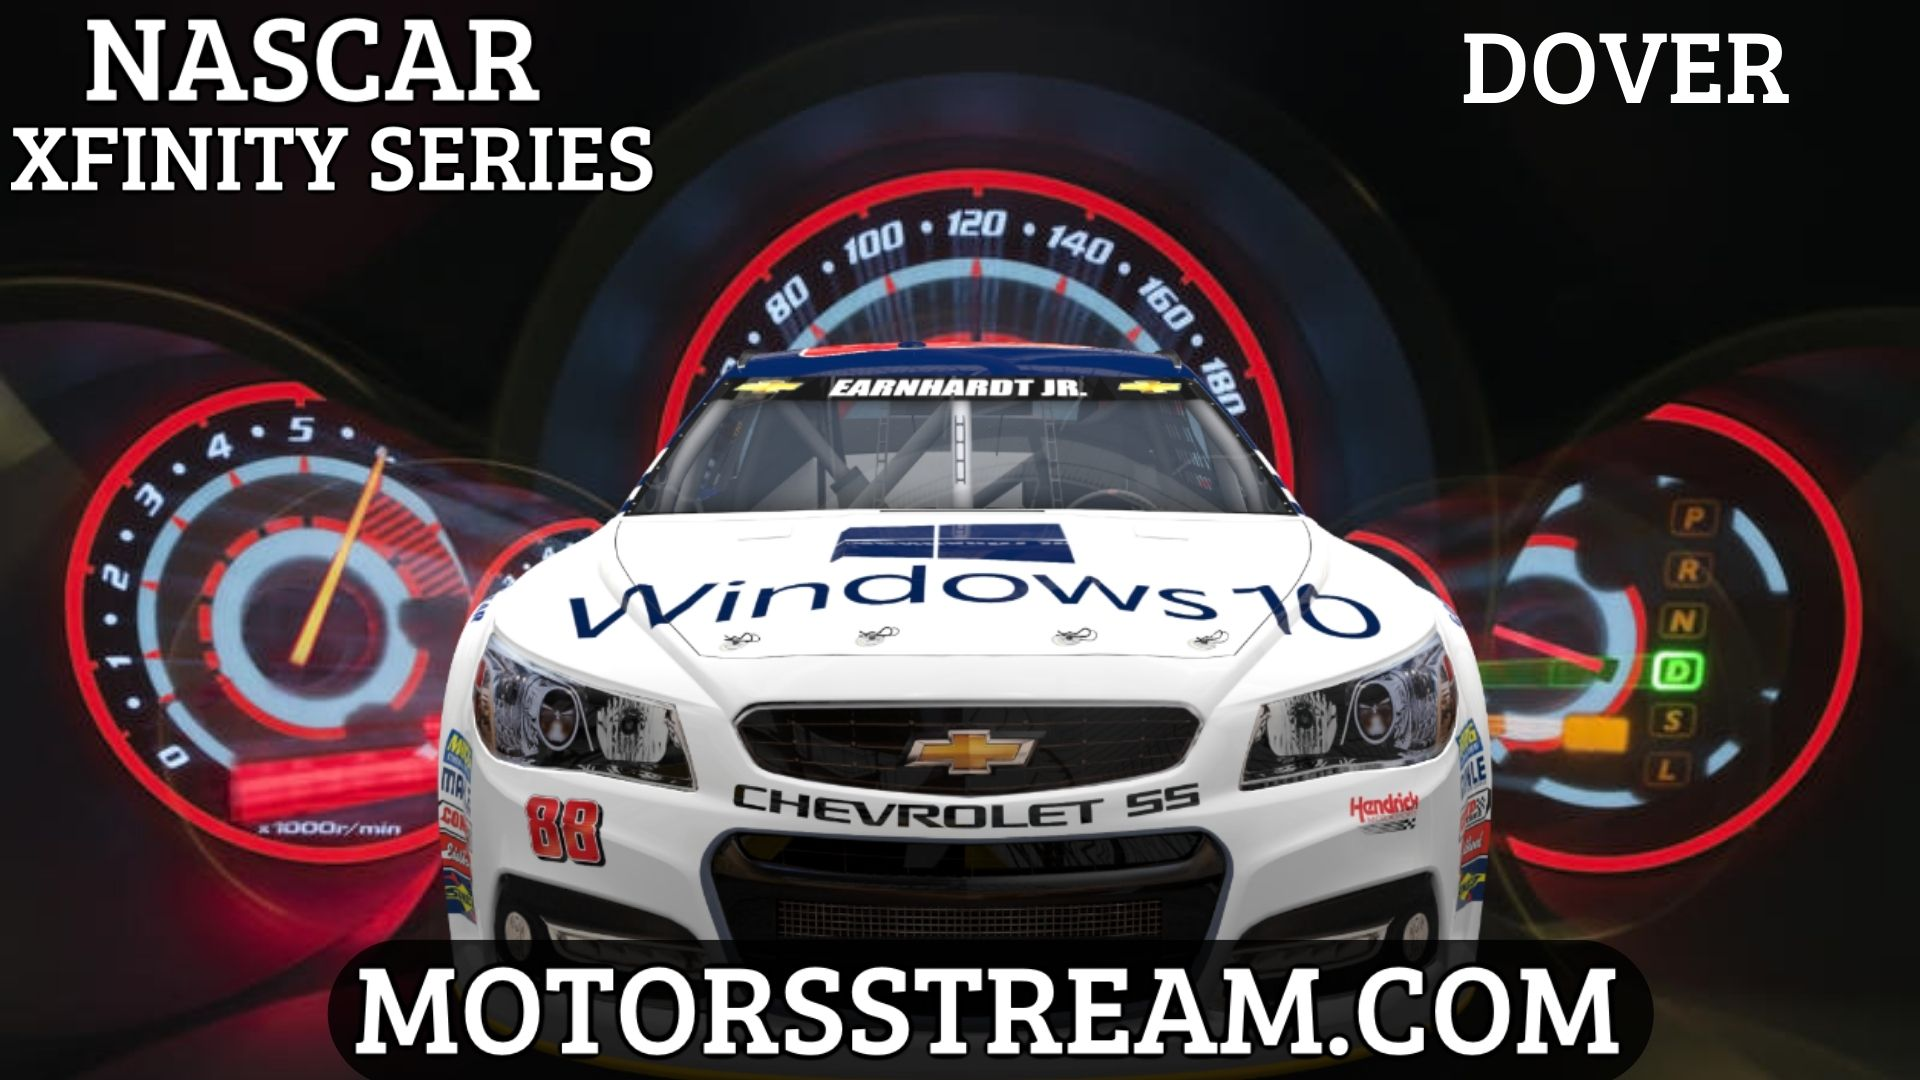 NASCAR Xfinity Series Race At Dover Live Stream | Dover 2021